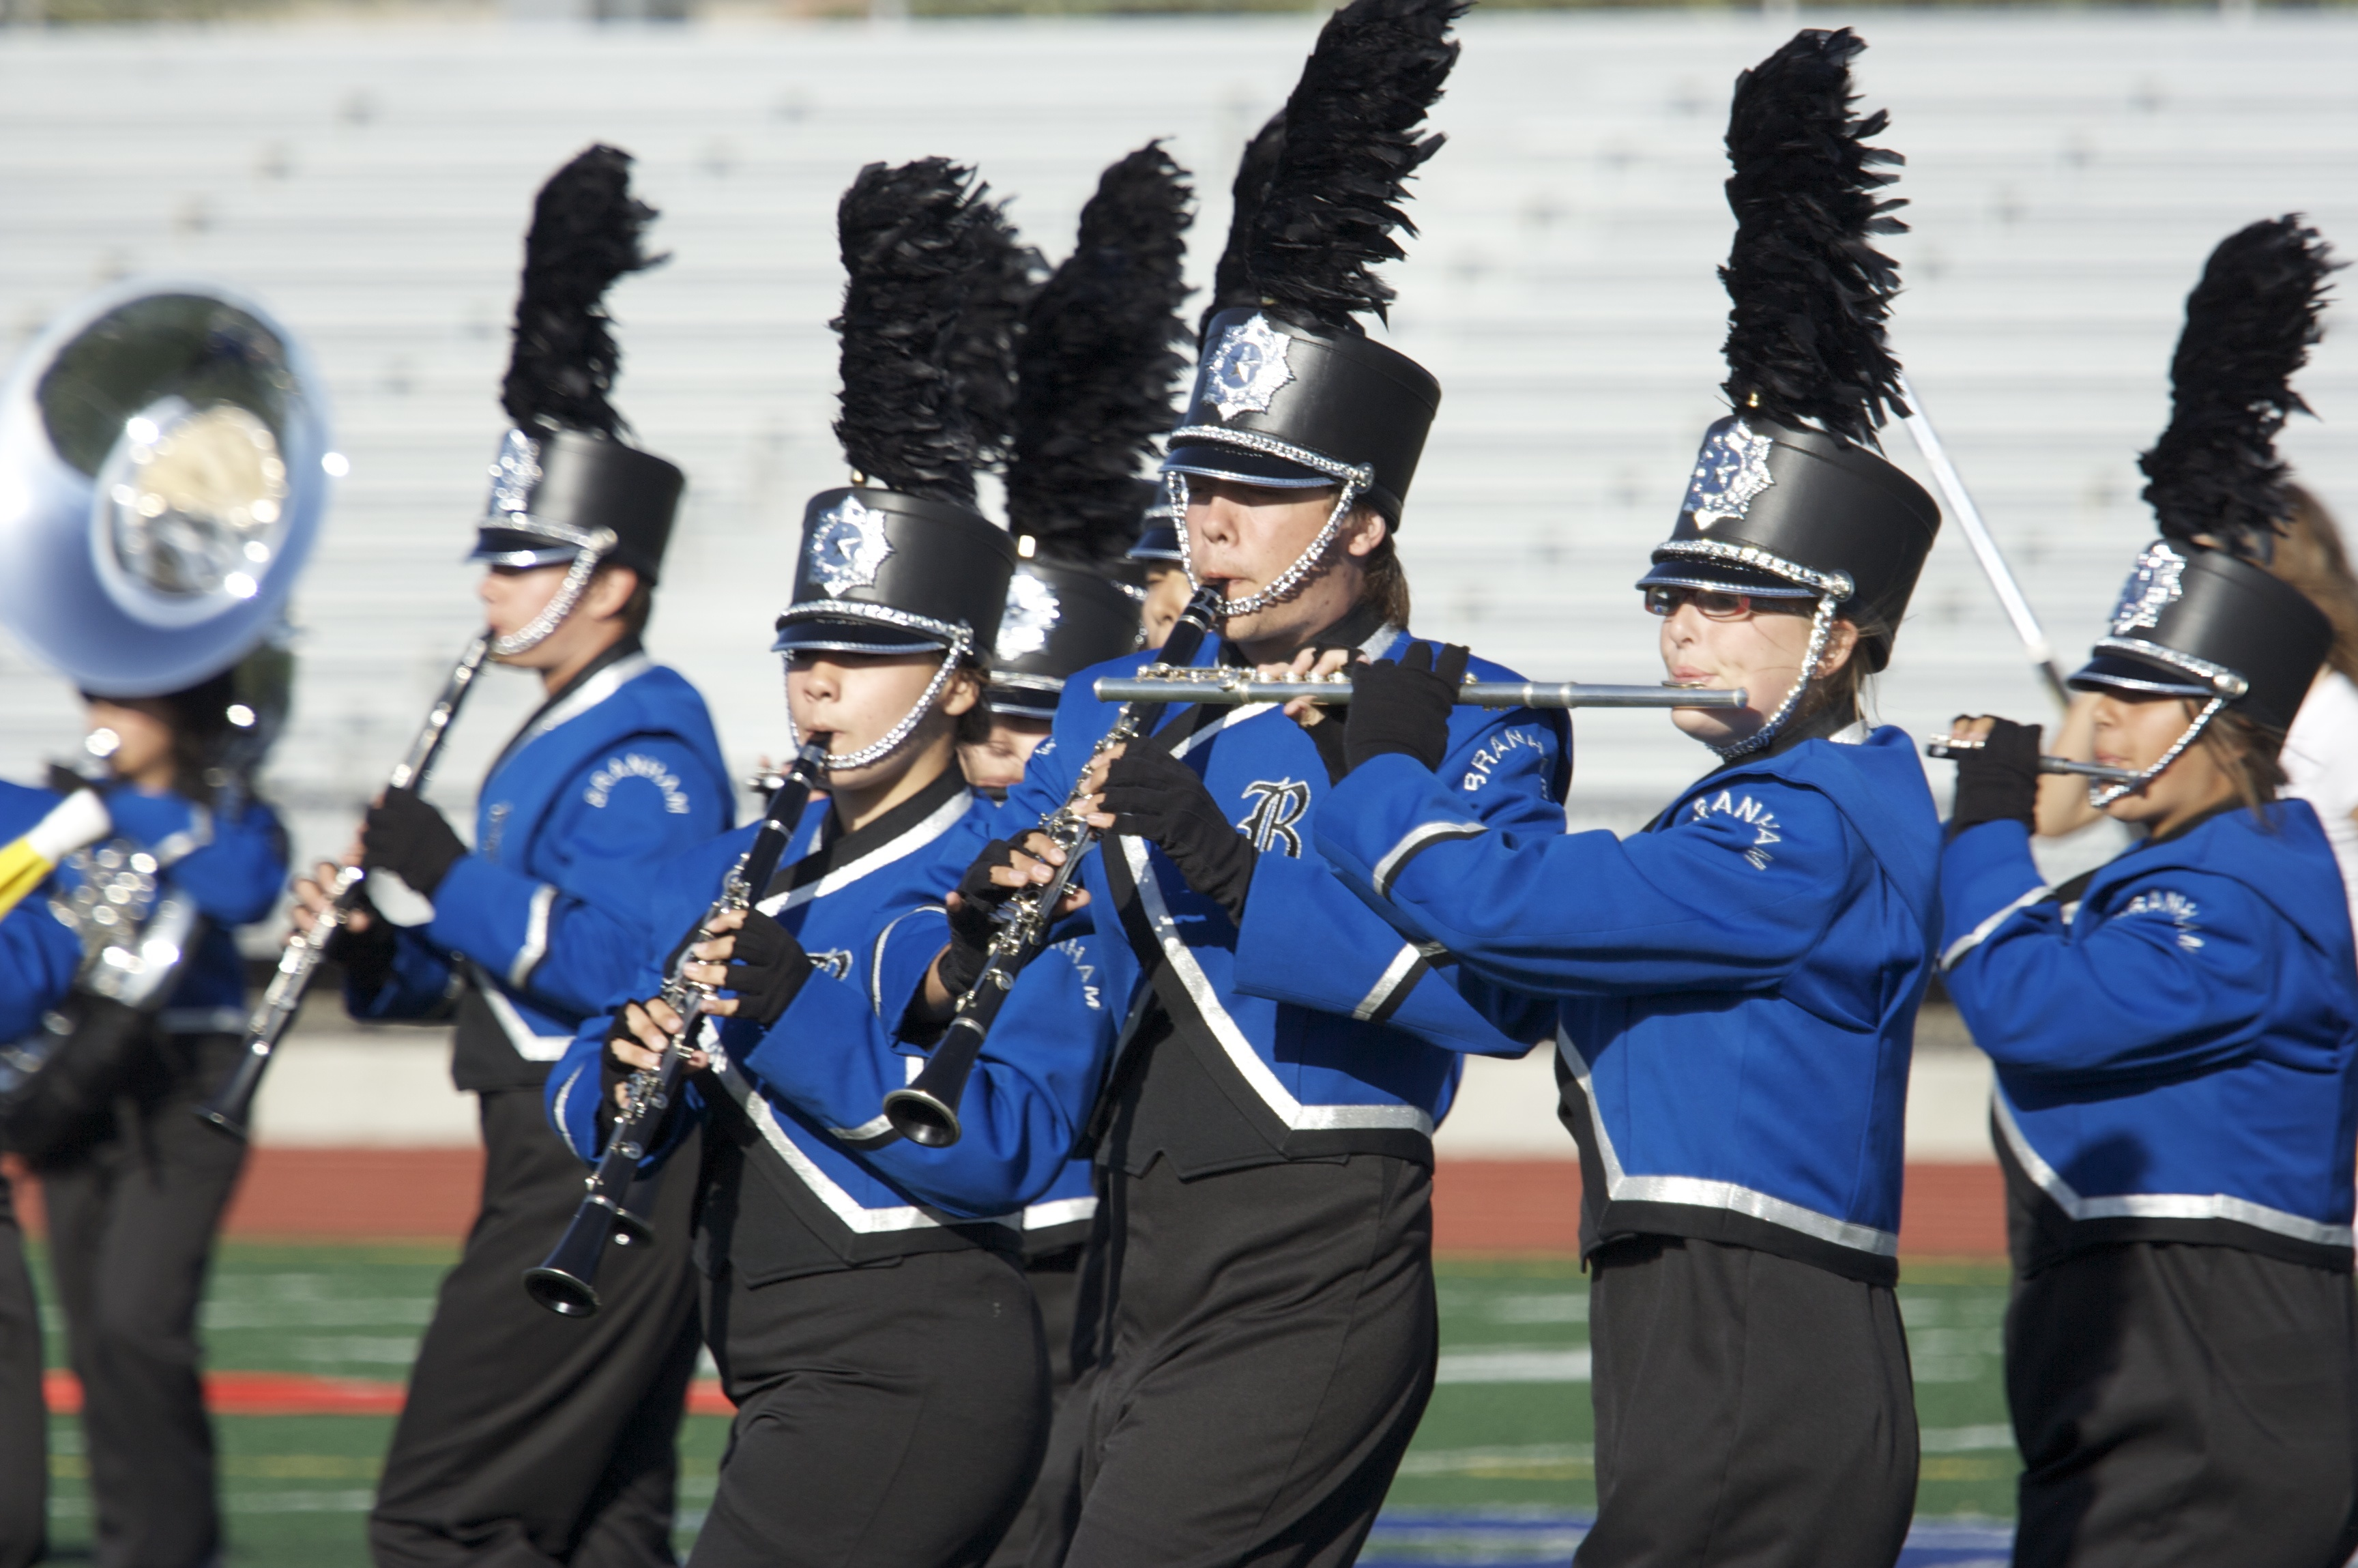 High School Marching Band Logos http://bhsroyalalliance.com/about